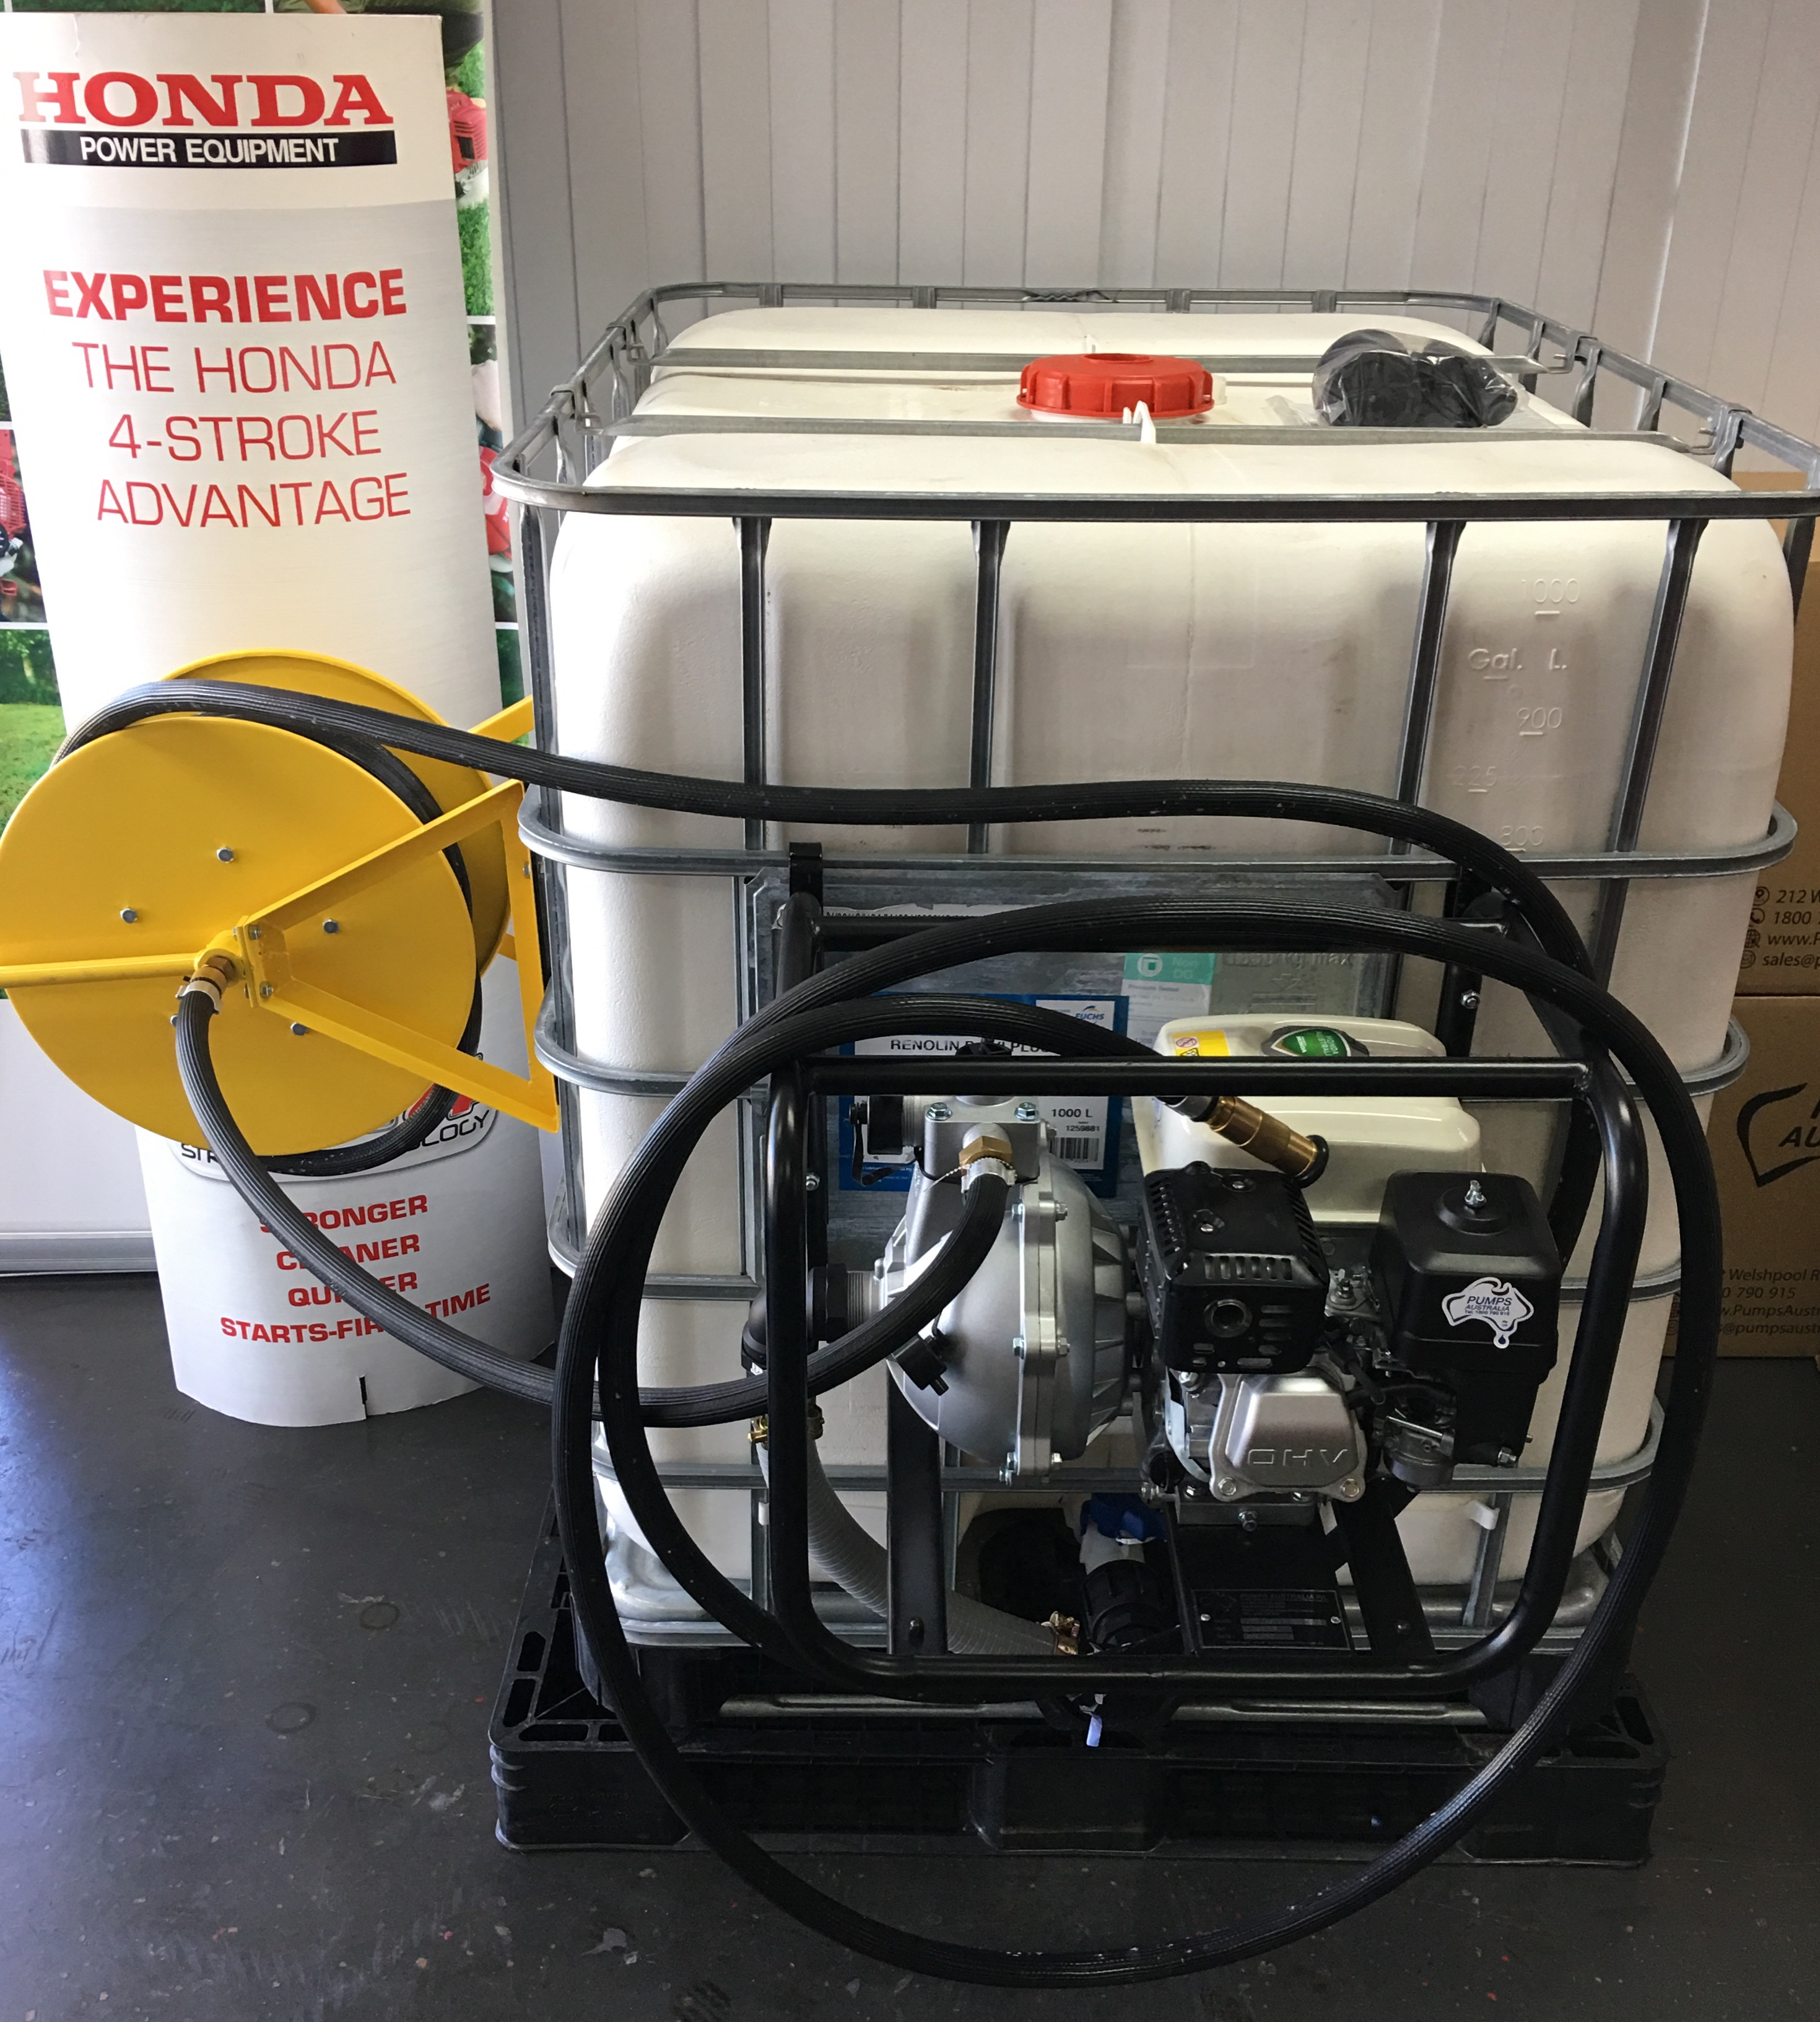 FireFighting PODMATE -The Ultimate Solution